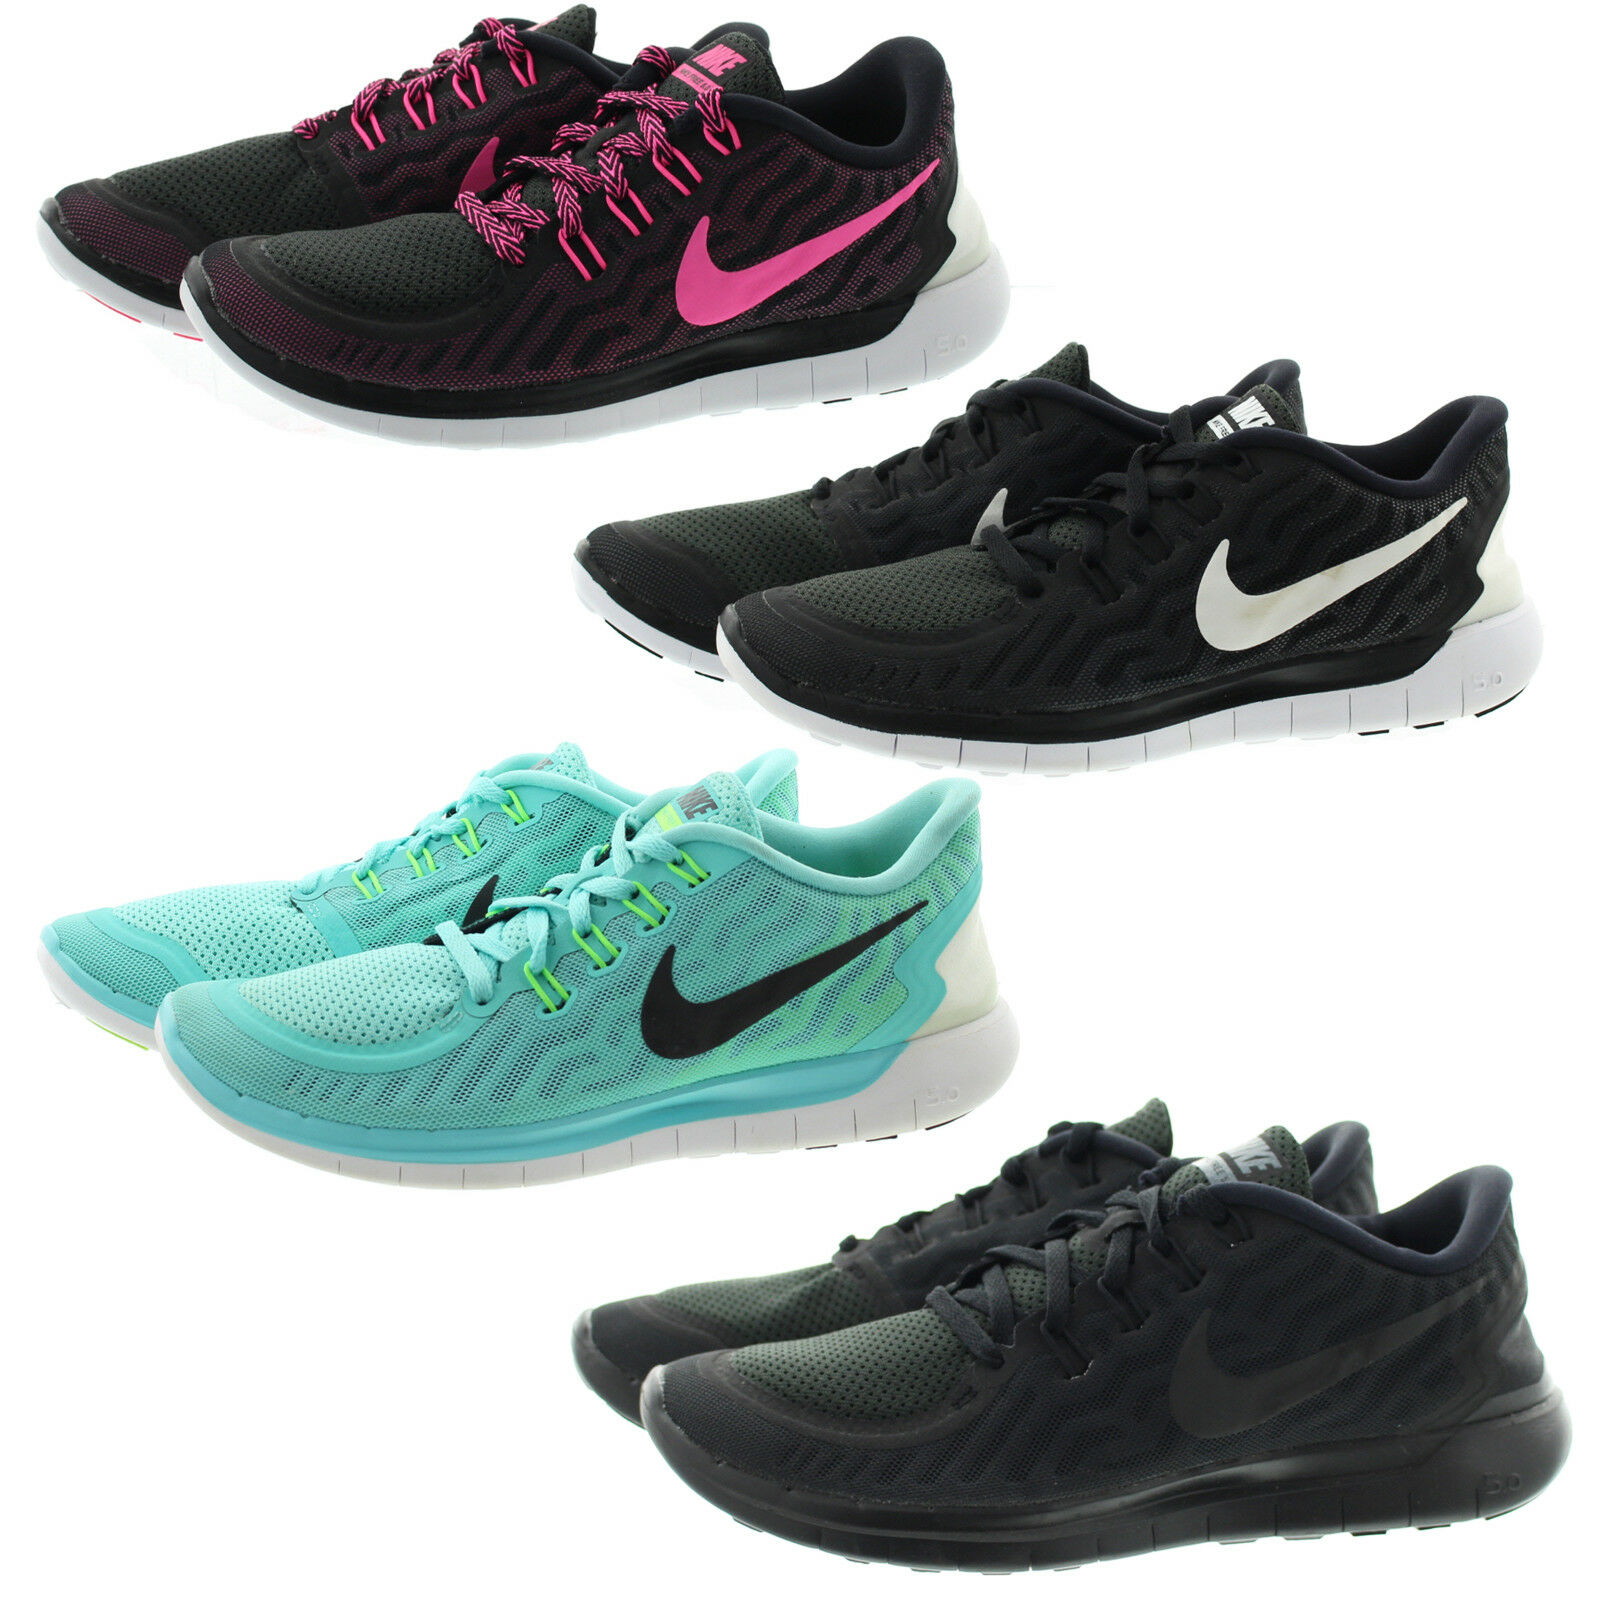 Nike 724383 Womens Free 5.0 Training Running Atheltic Low Top shoes Sneakers